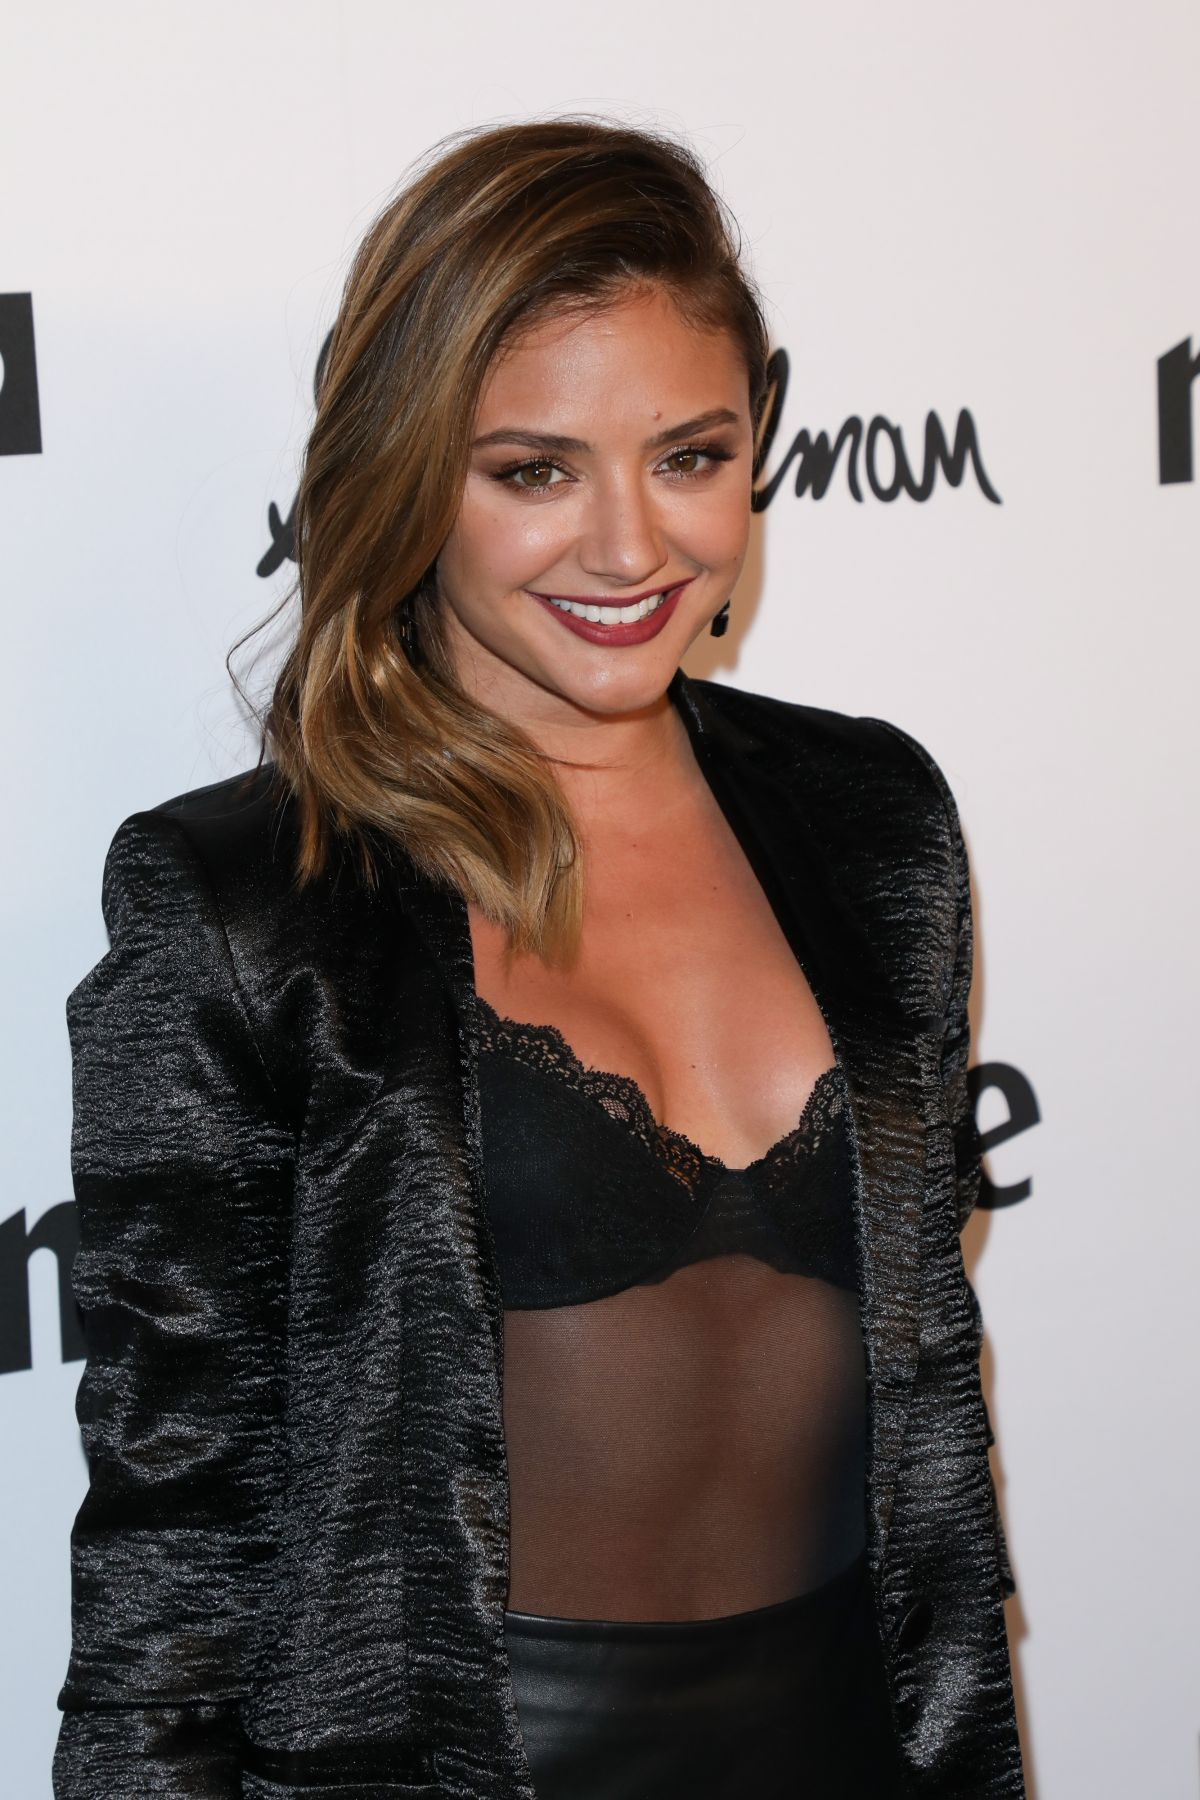 Christine Evangelista nude (29 photo), Tits, Paparazzi, Feet, braless 2018